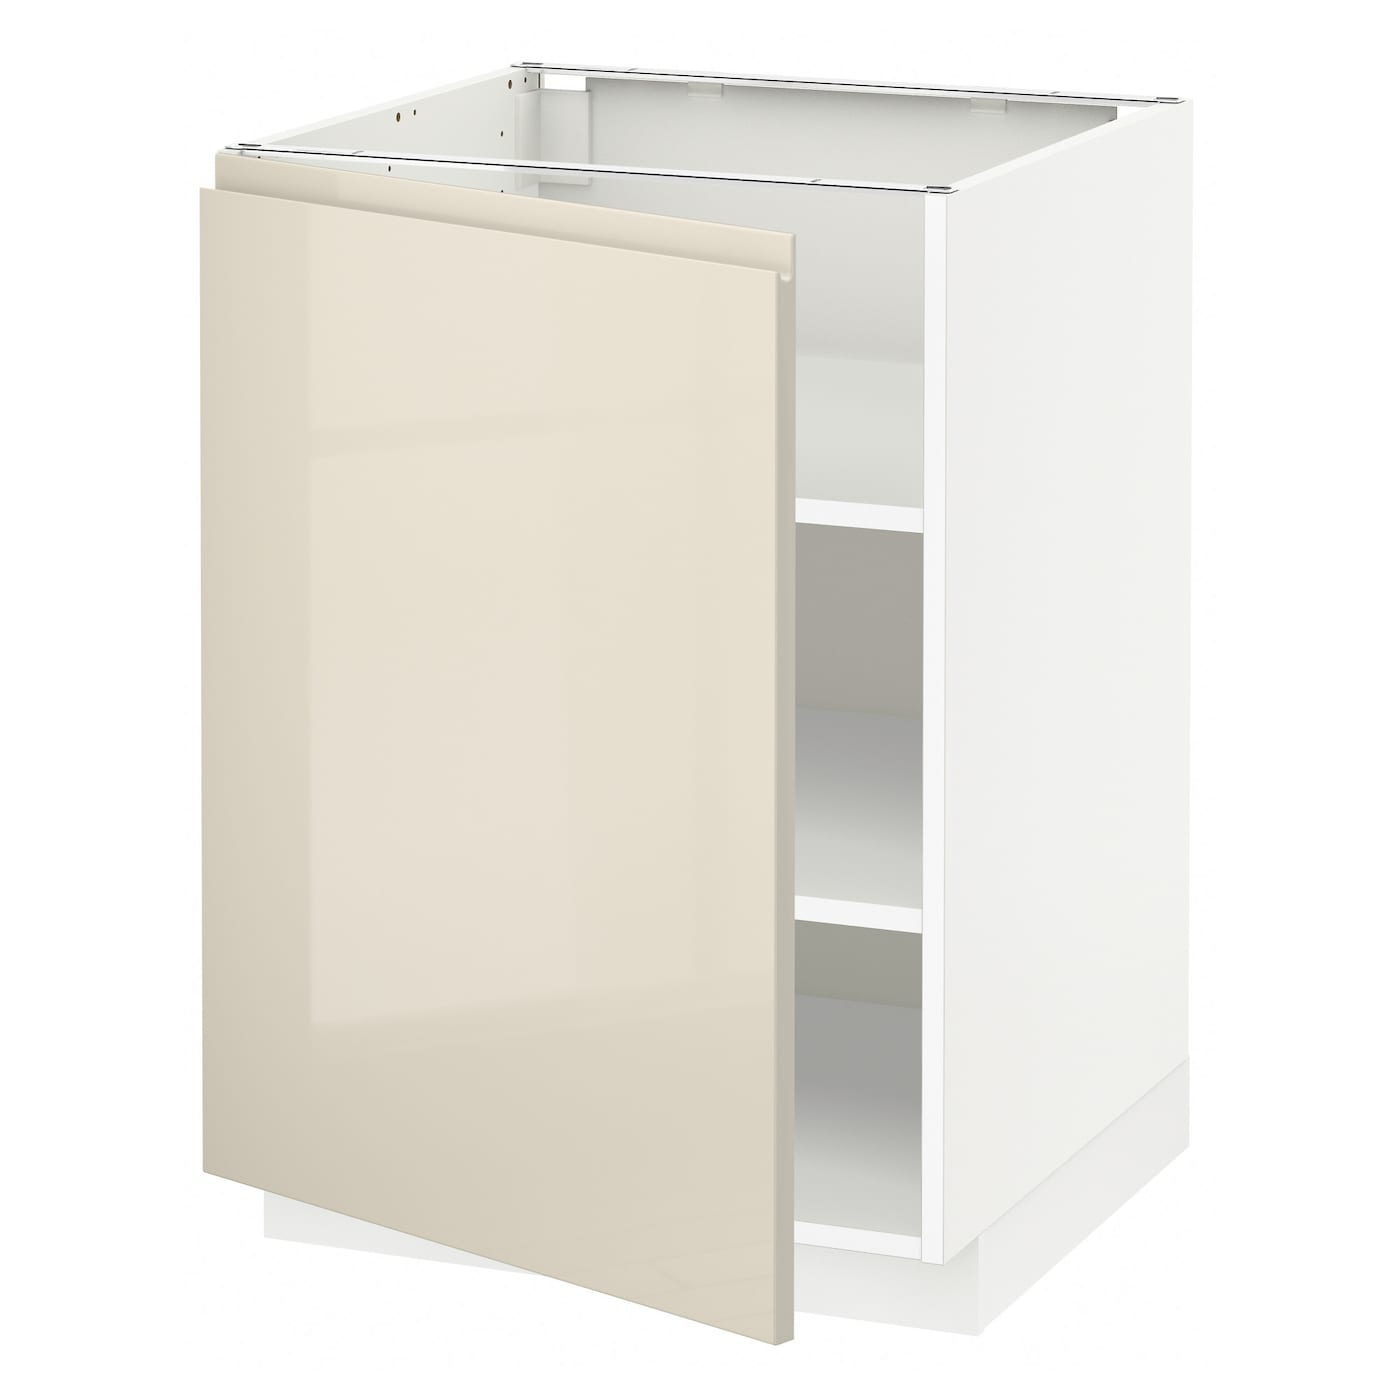 Metod Base Cabinet With Shelves White Voxtorp High Gloss Light Beige 60x60 Cm Ikea